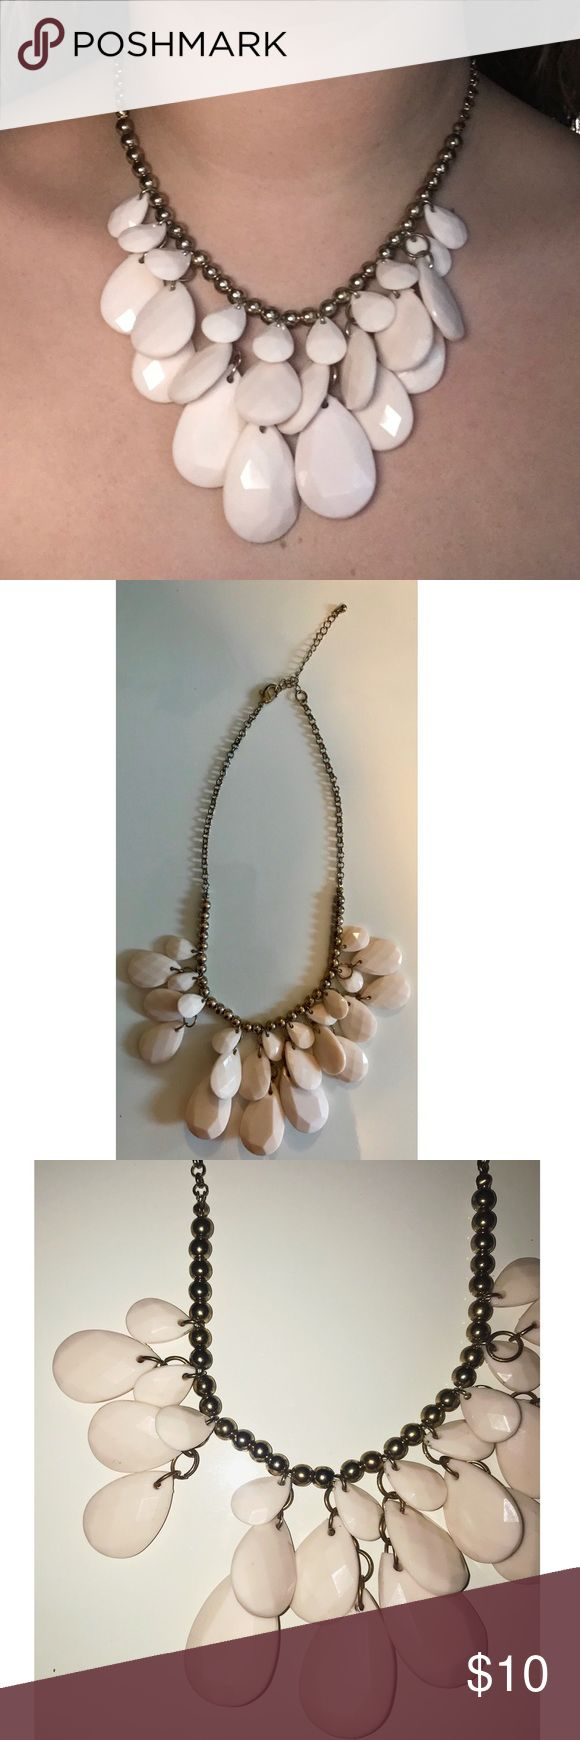 BaubleBar Statement Dainty Necklace Pearls Vintage Beautiful light pink large pearl necklace with a gold necklace. Great fashion statement chain. Condition:Great condition,pre-owned.Has been worn.As you can see in the pictures it is missing a pearl.It is hardly noticeable on. Color:Gold looks a bit vintage.Pearls are light pink in different sizes. Check my closet for more items.Bundle on more items to save on shipping,plus get an additional discount 📌Feel free to ask any questions 📌Offers…